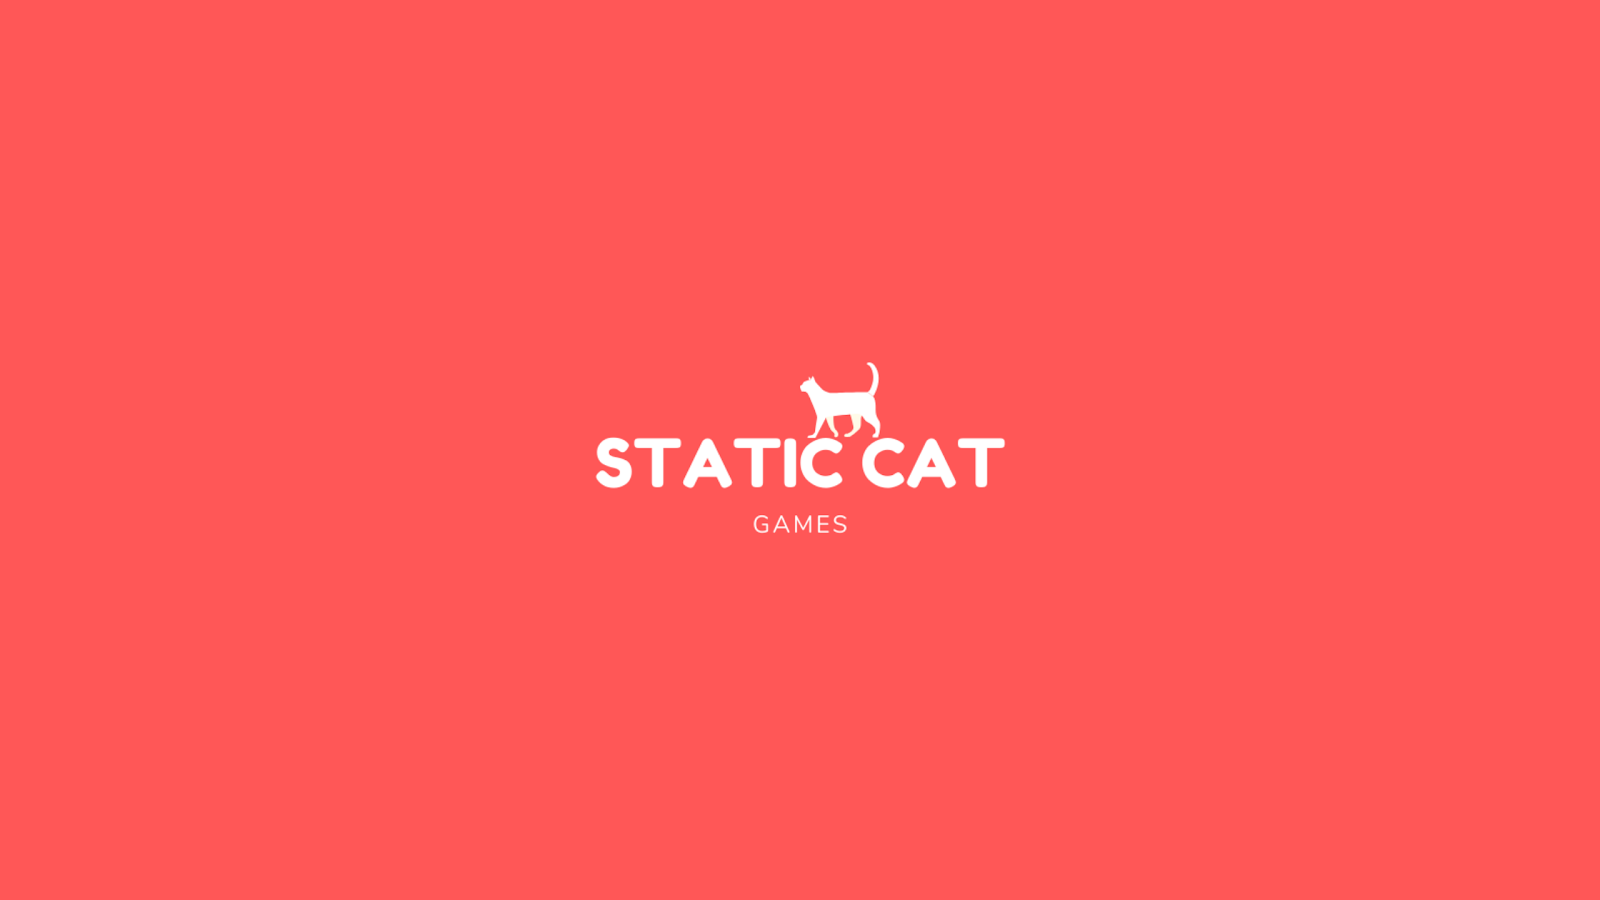 Static Cat Games